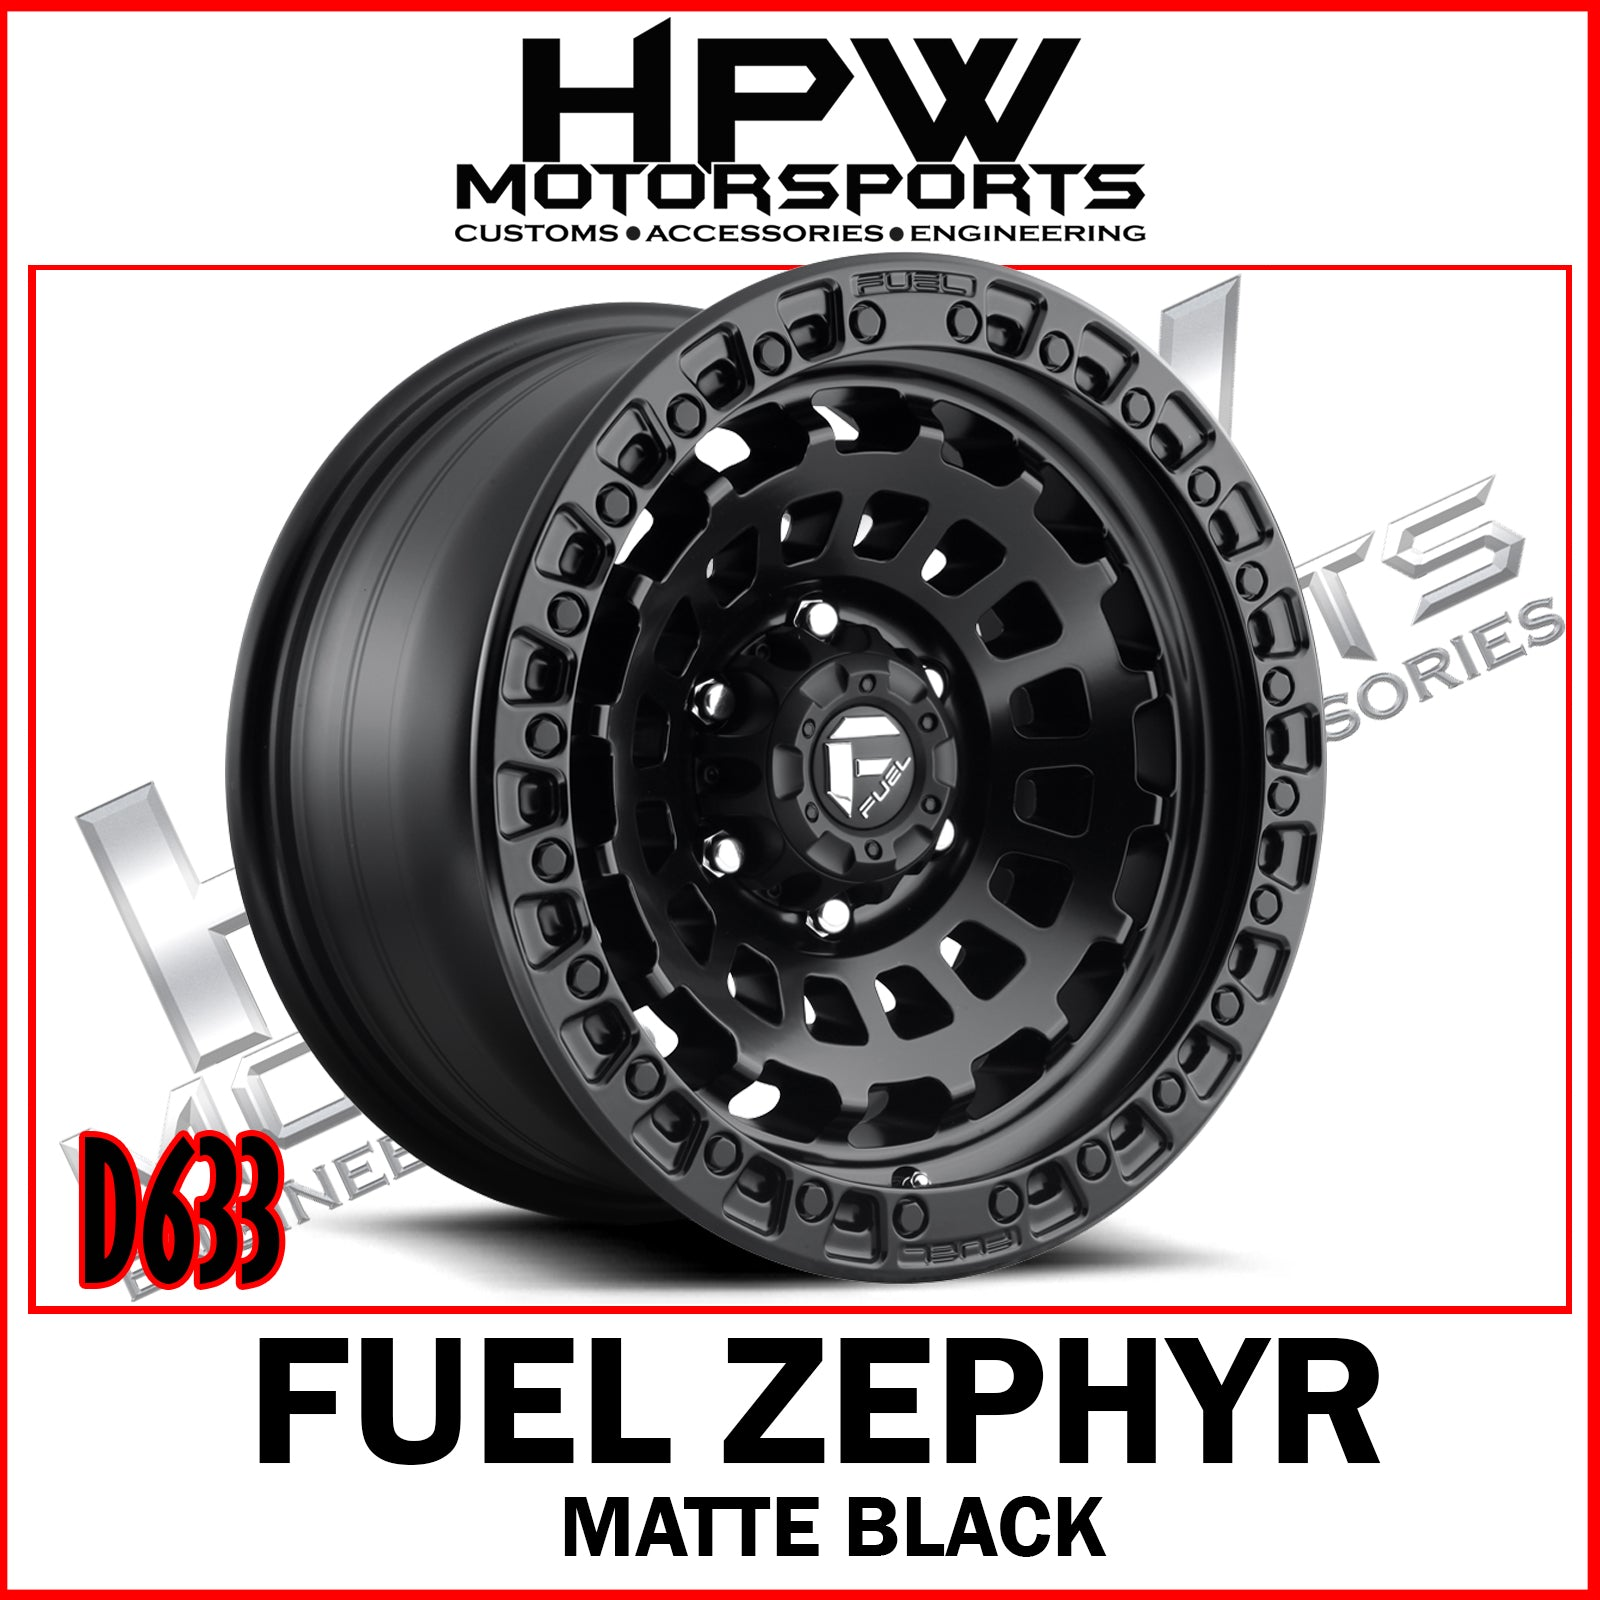 D633 FUEL ZEPHYR - MATTE BLACK - Set of 4